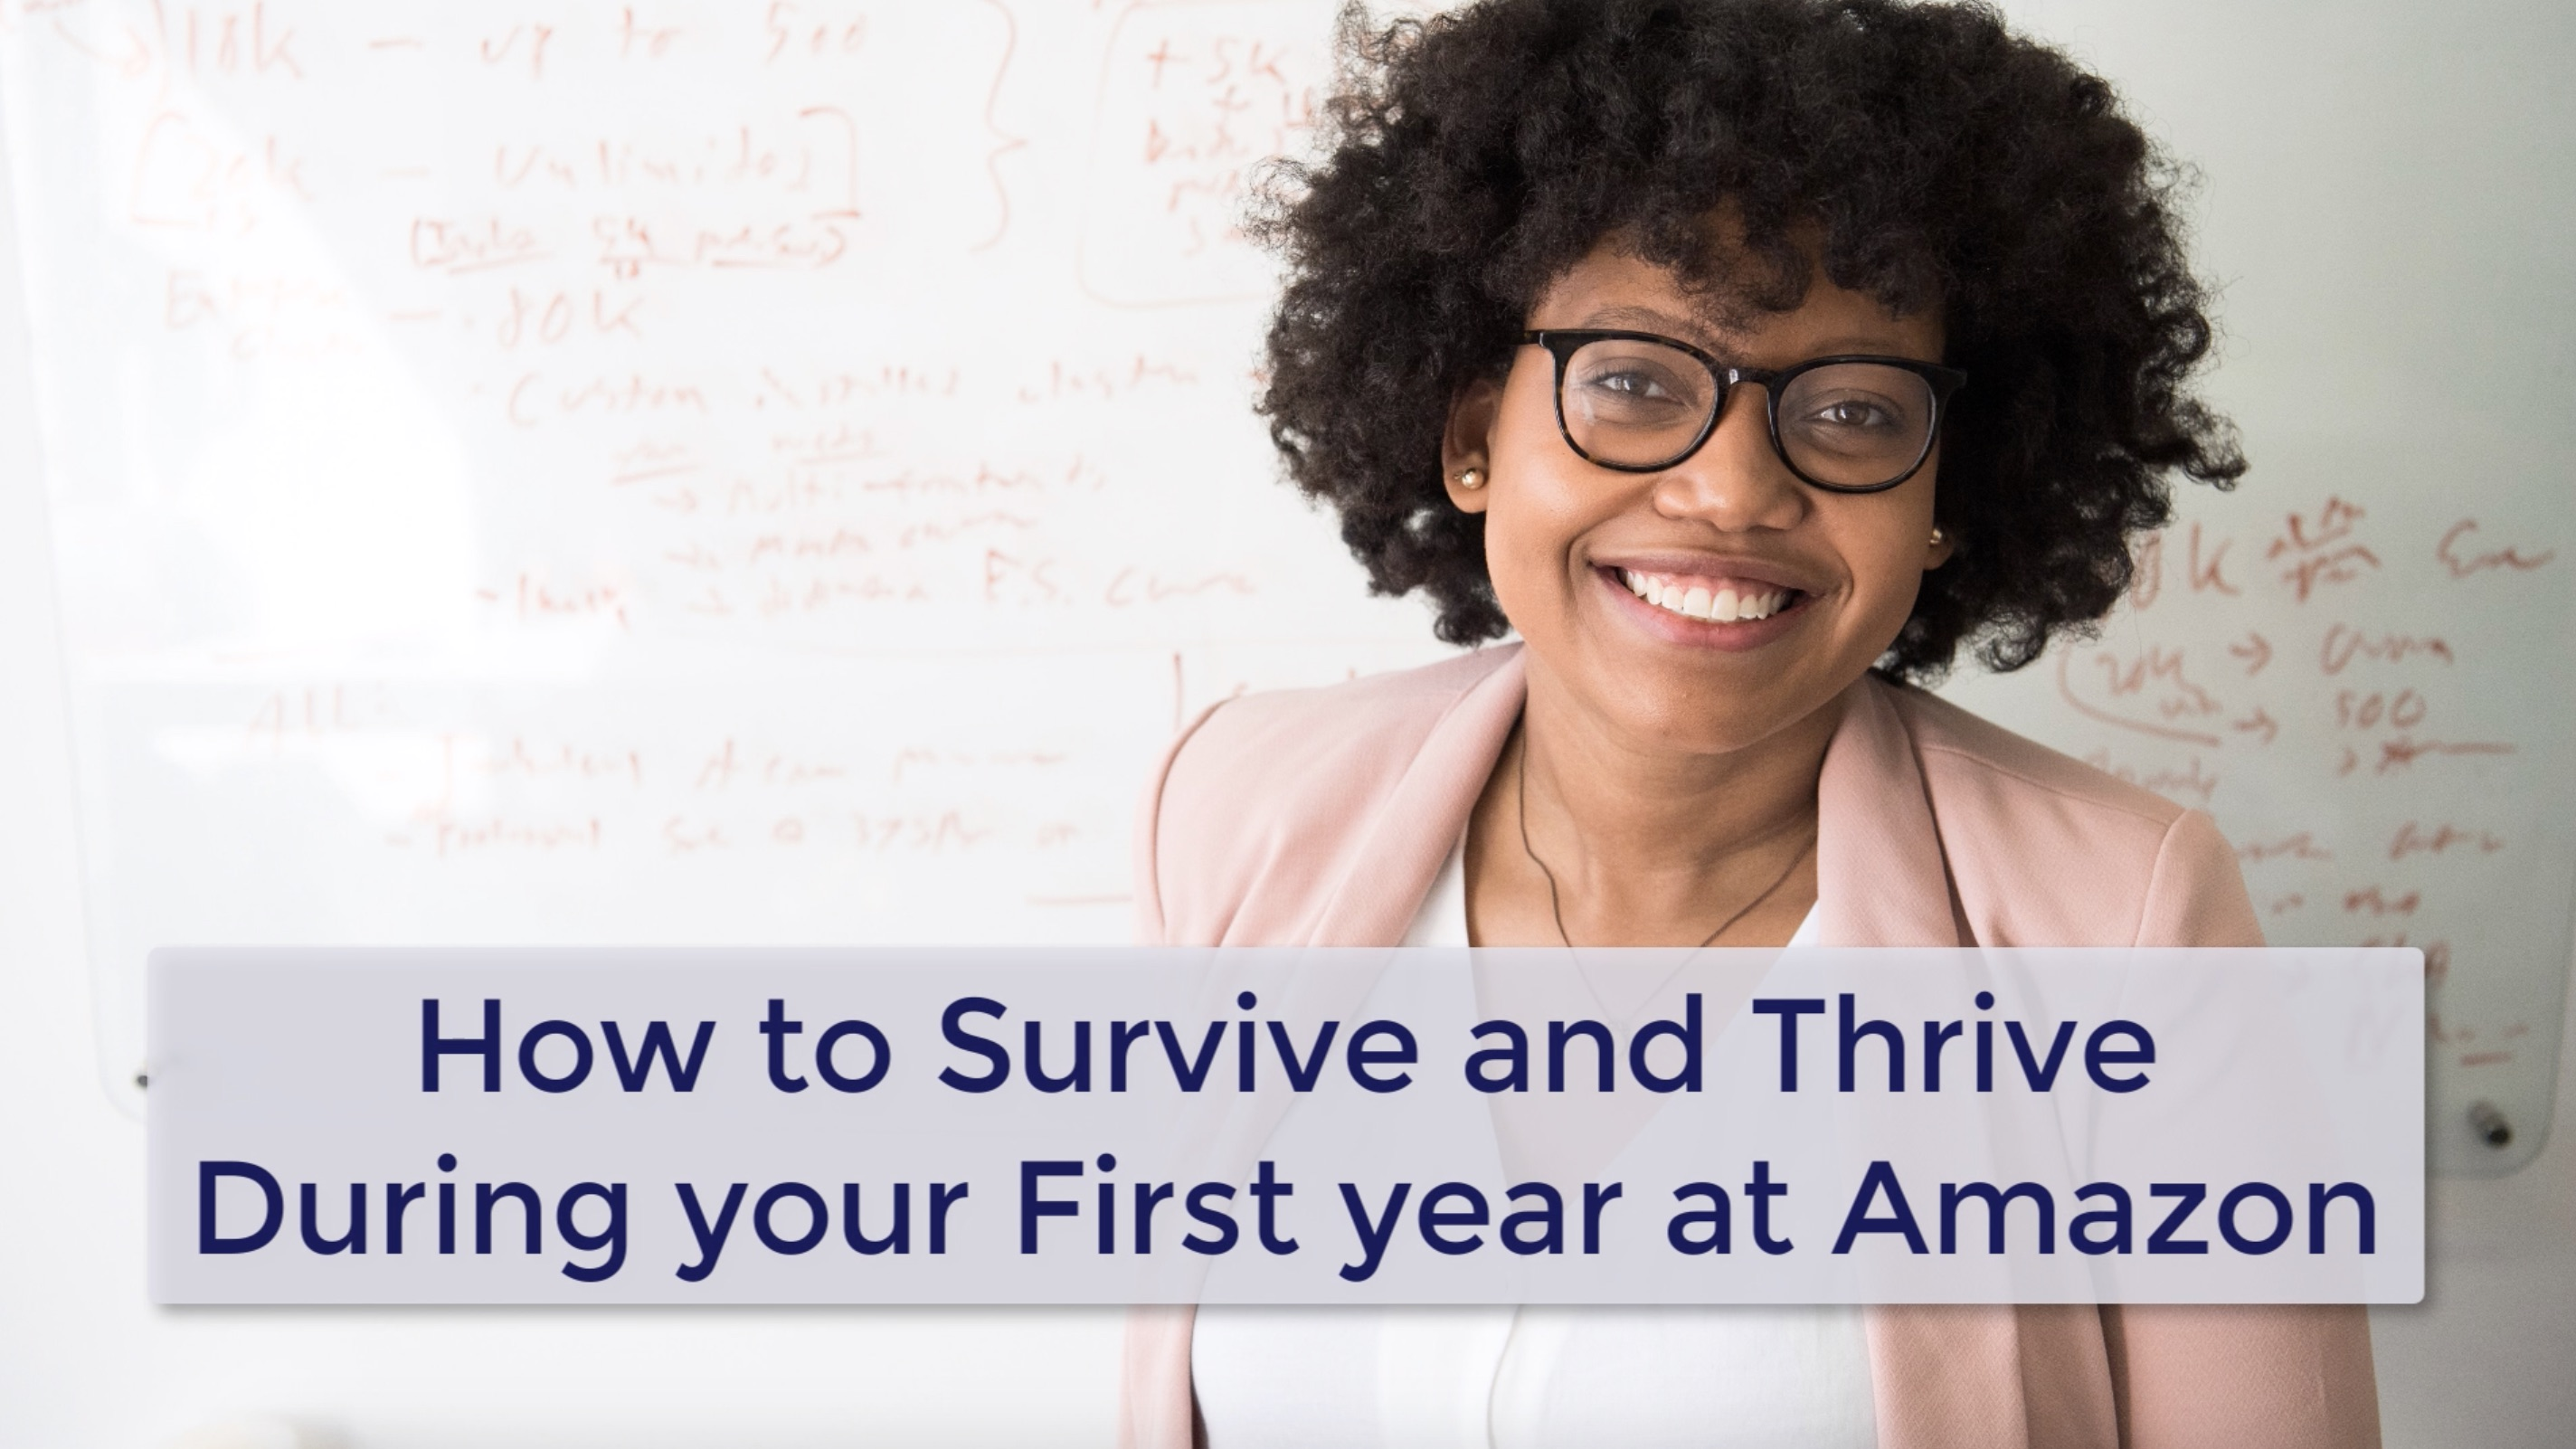 How to Survive and Thrive During your First year at Amazon